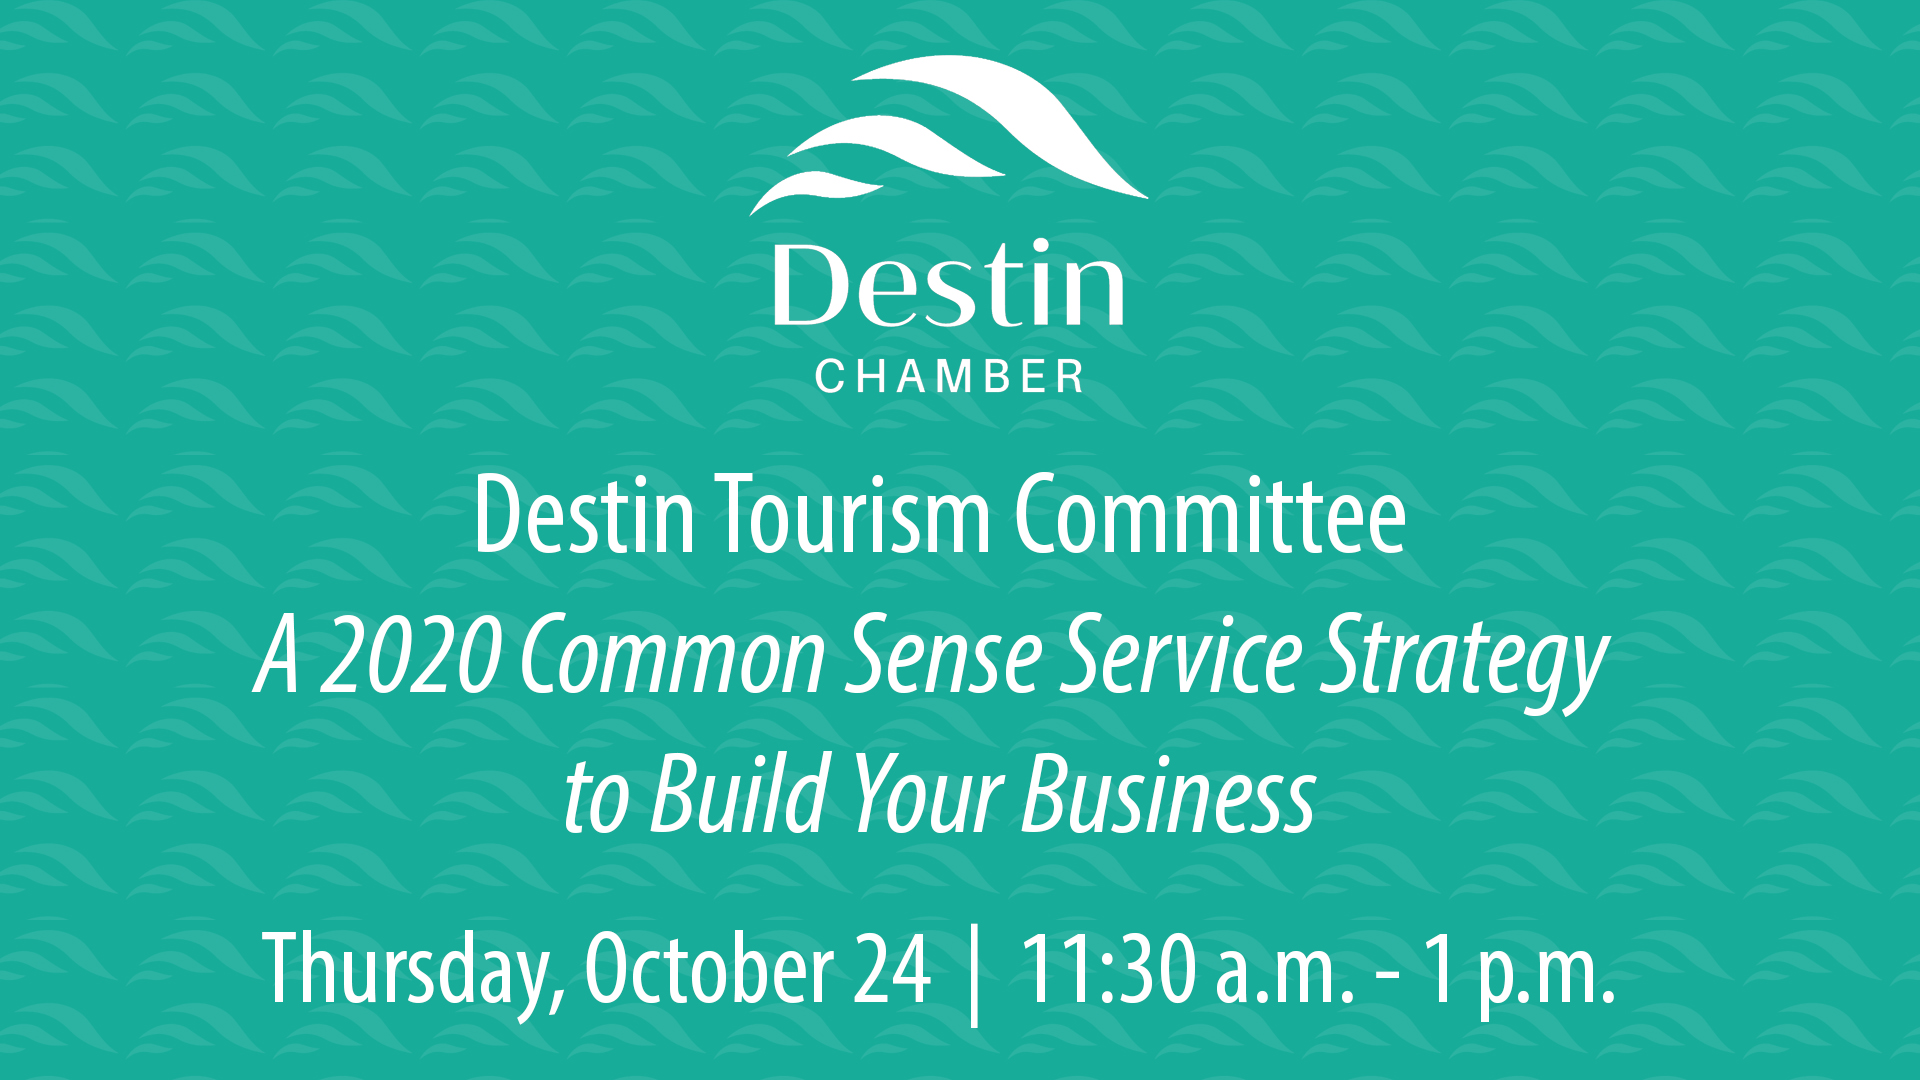 Destin Chamber Tourism Committee October 24